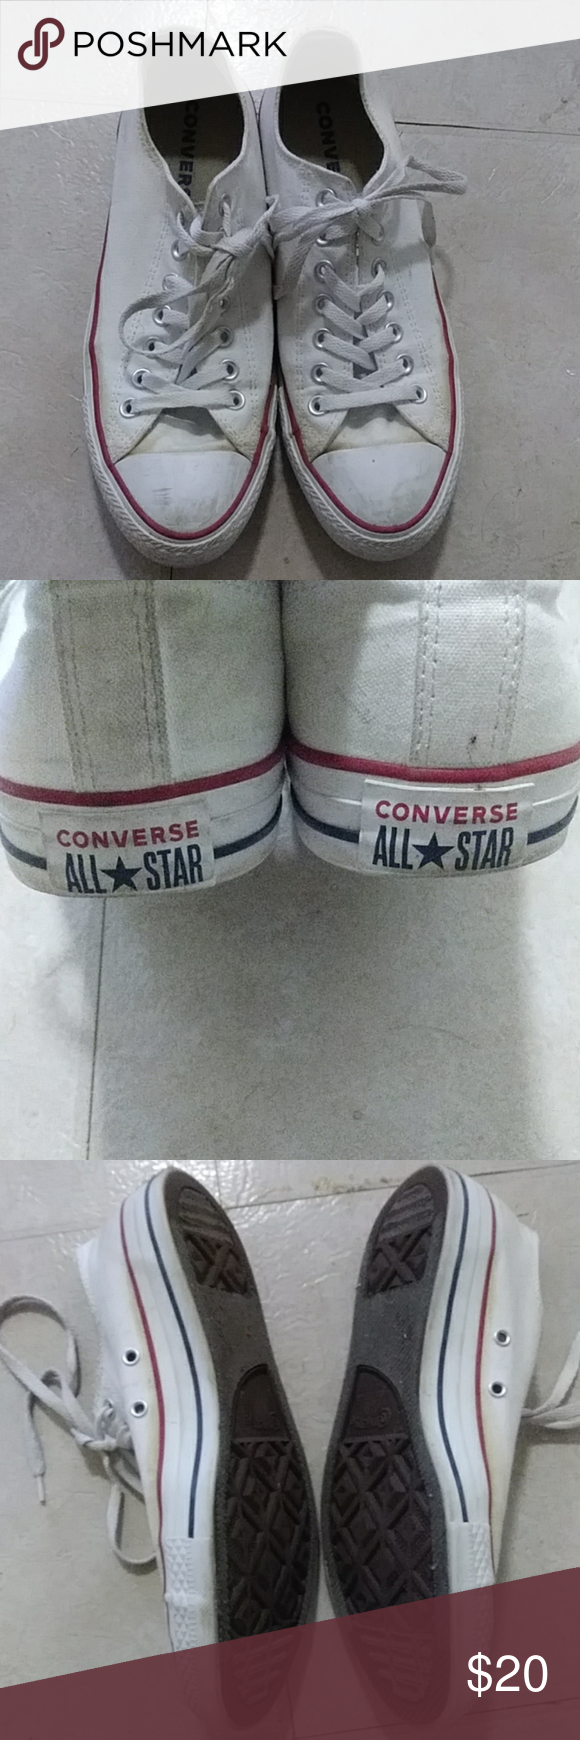 Mens White Converse Sneakers Size 8.5